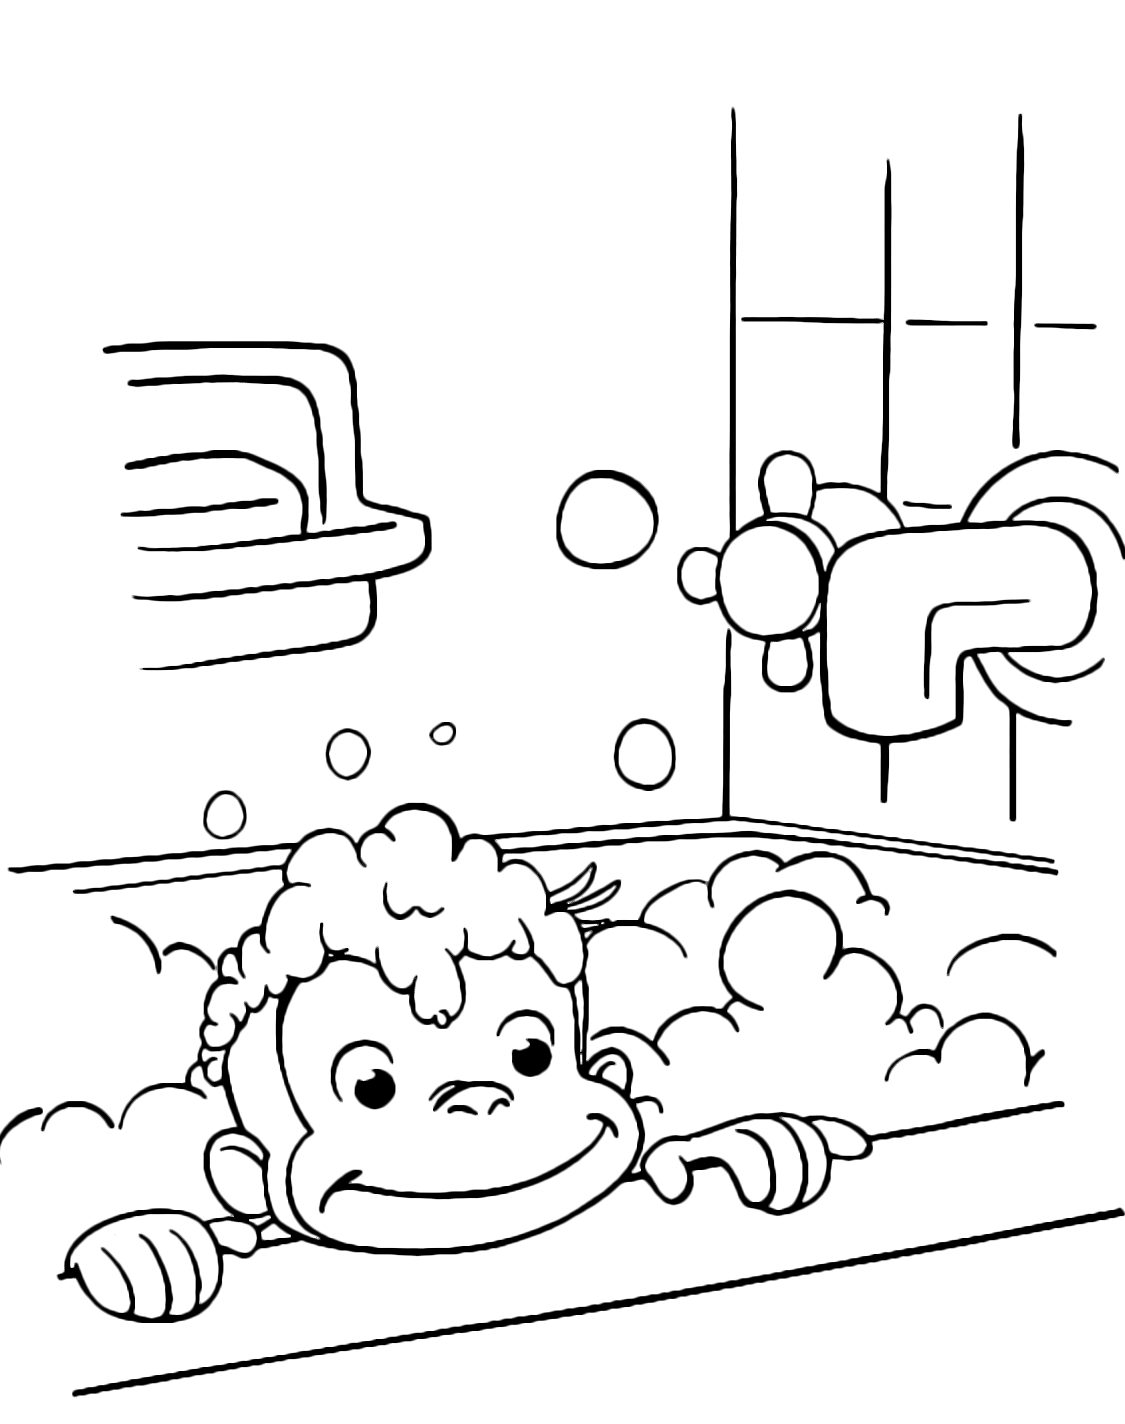 Curious George - George takes a bath with foam